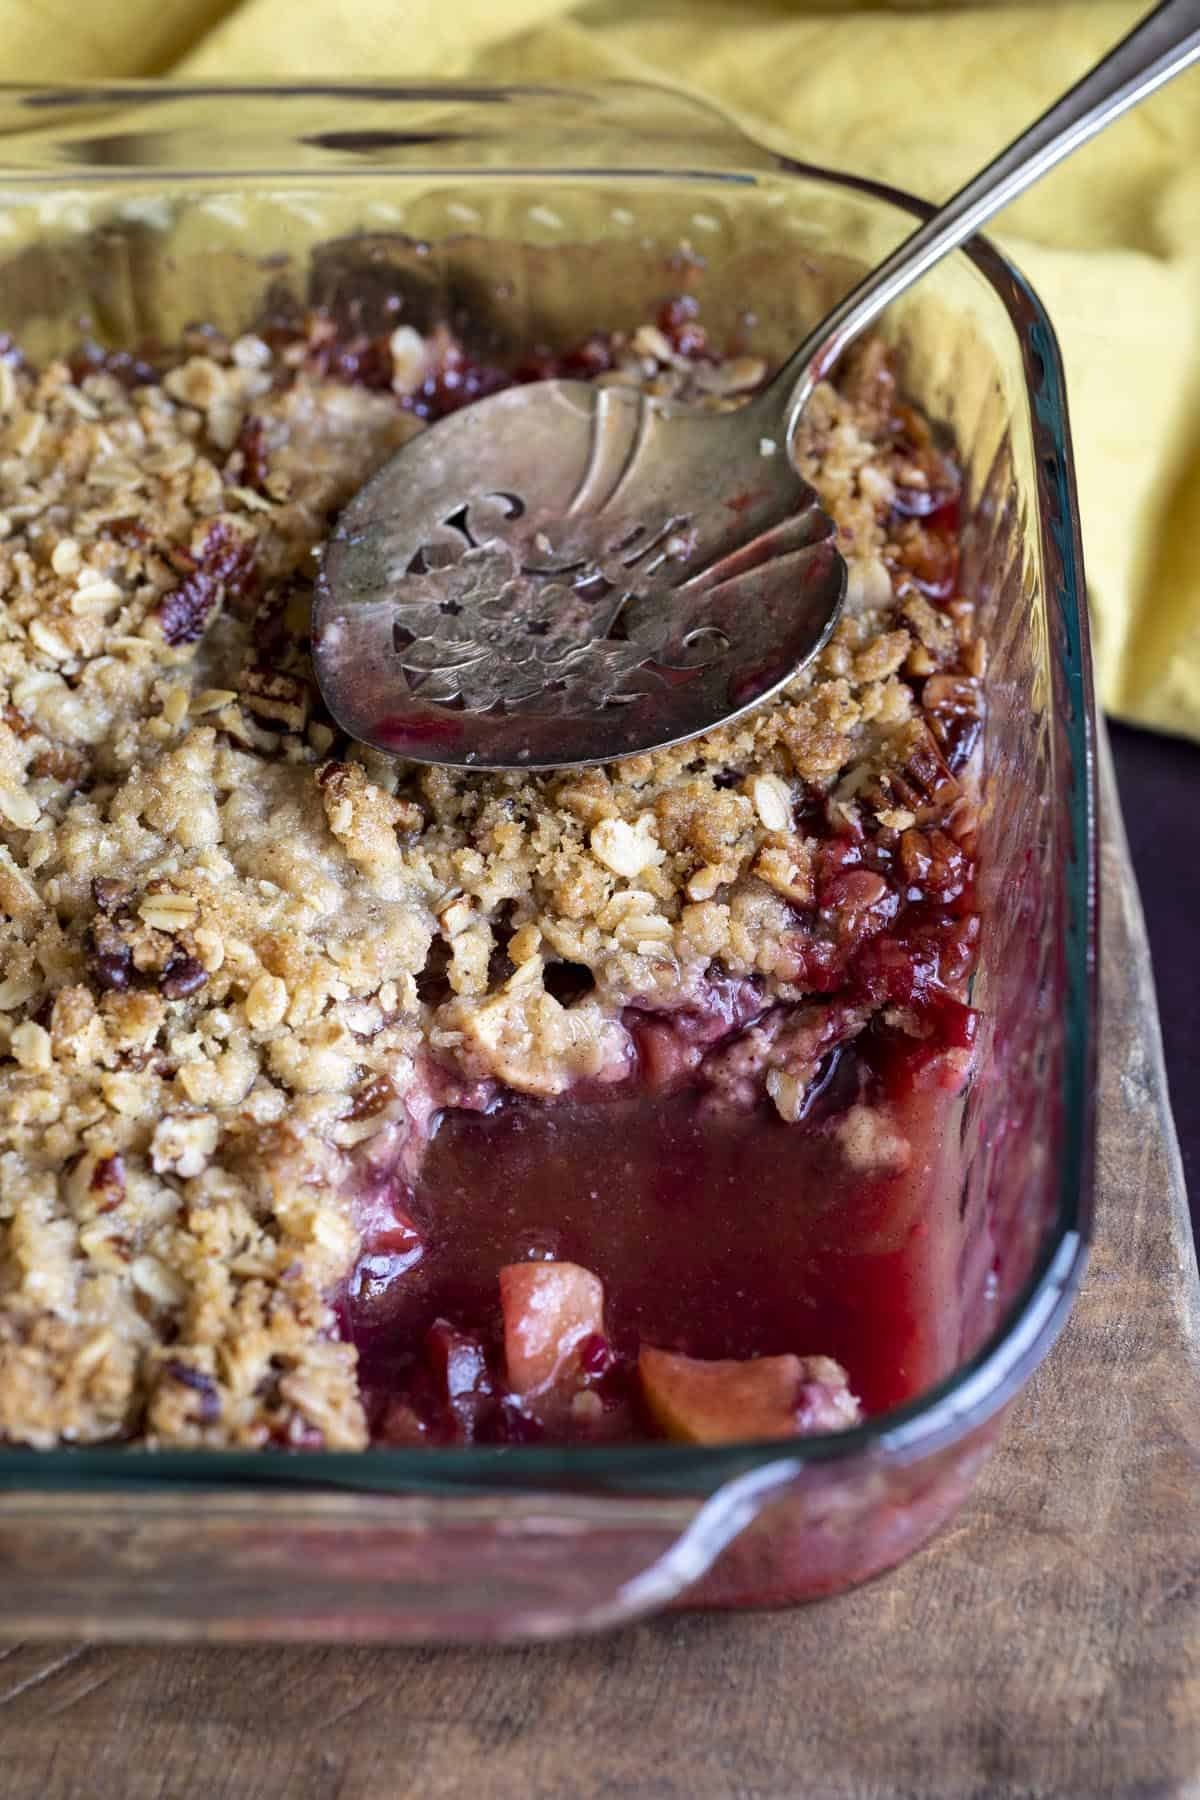 Apple and plum crumble in a glass baking pan, a scoop has been served.